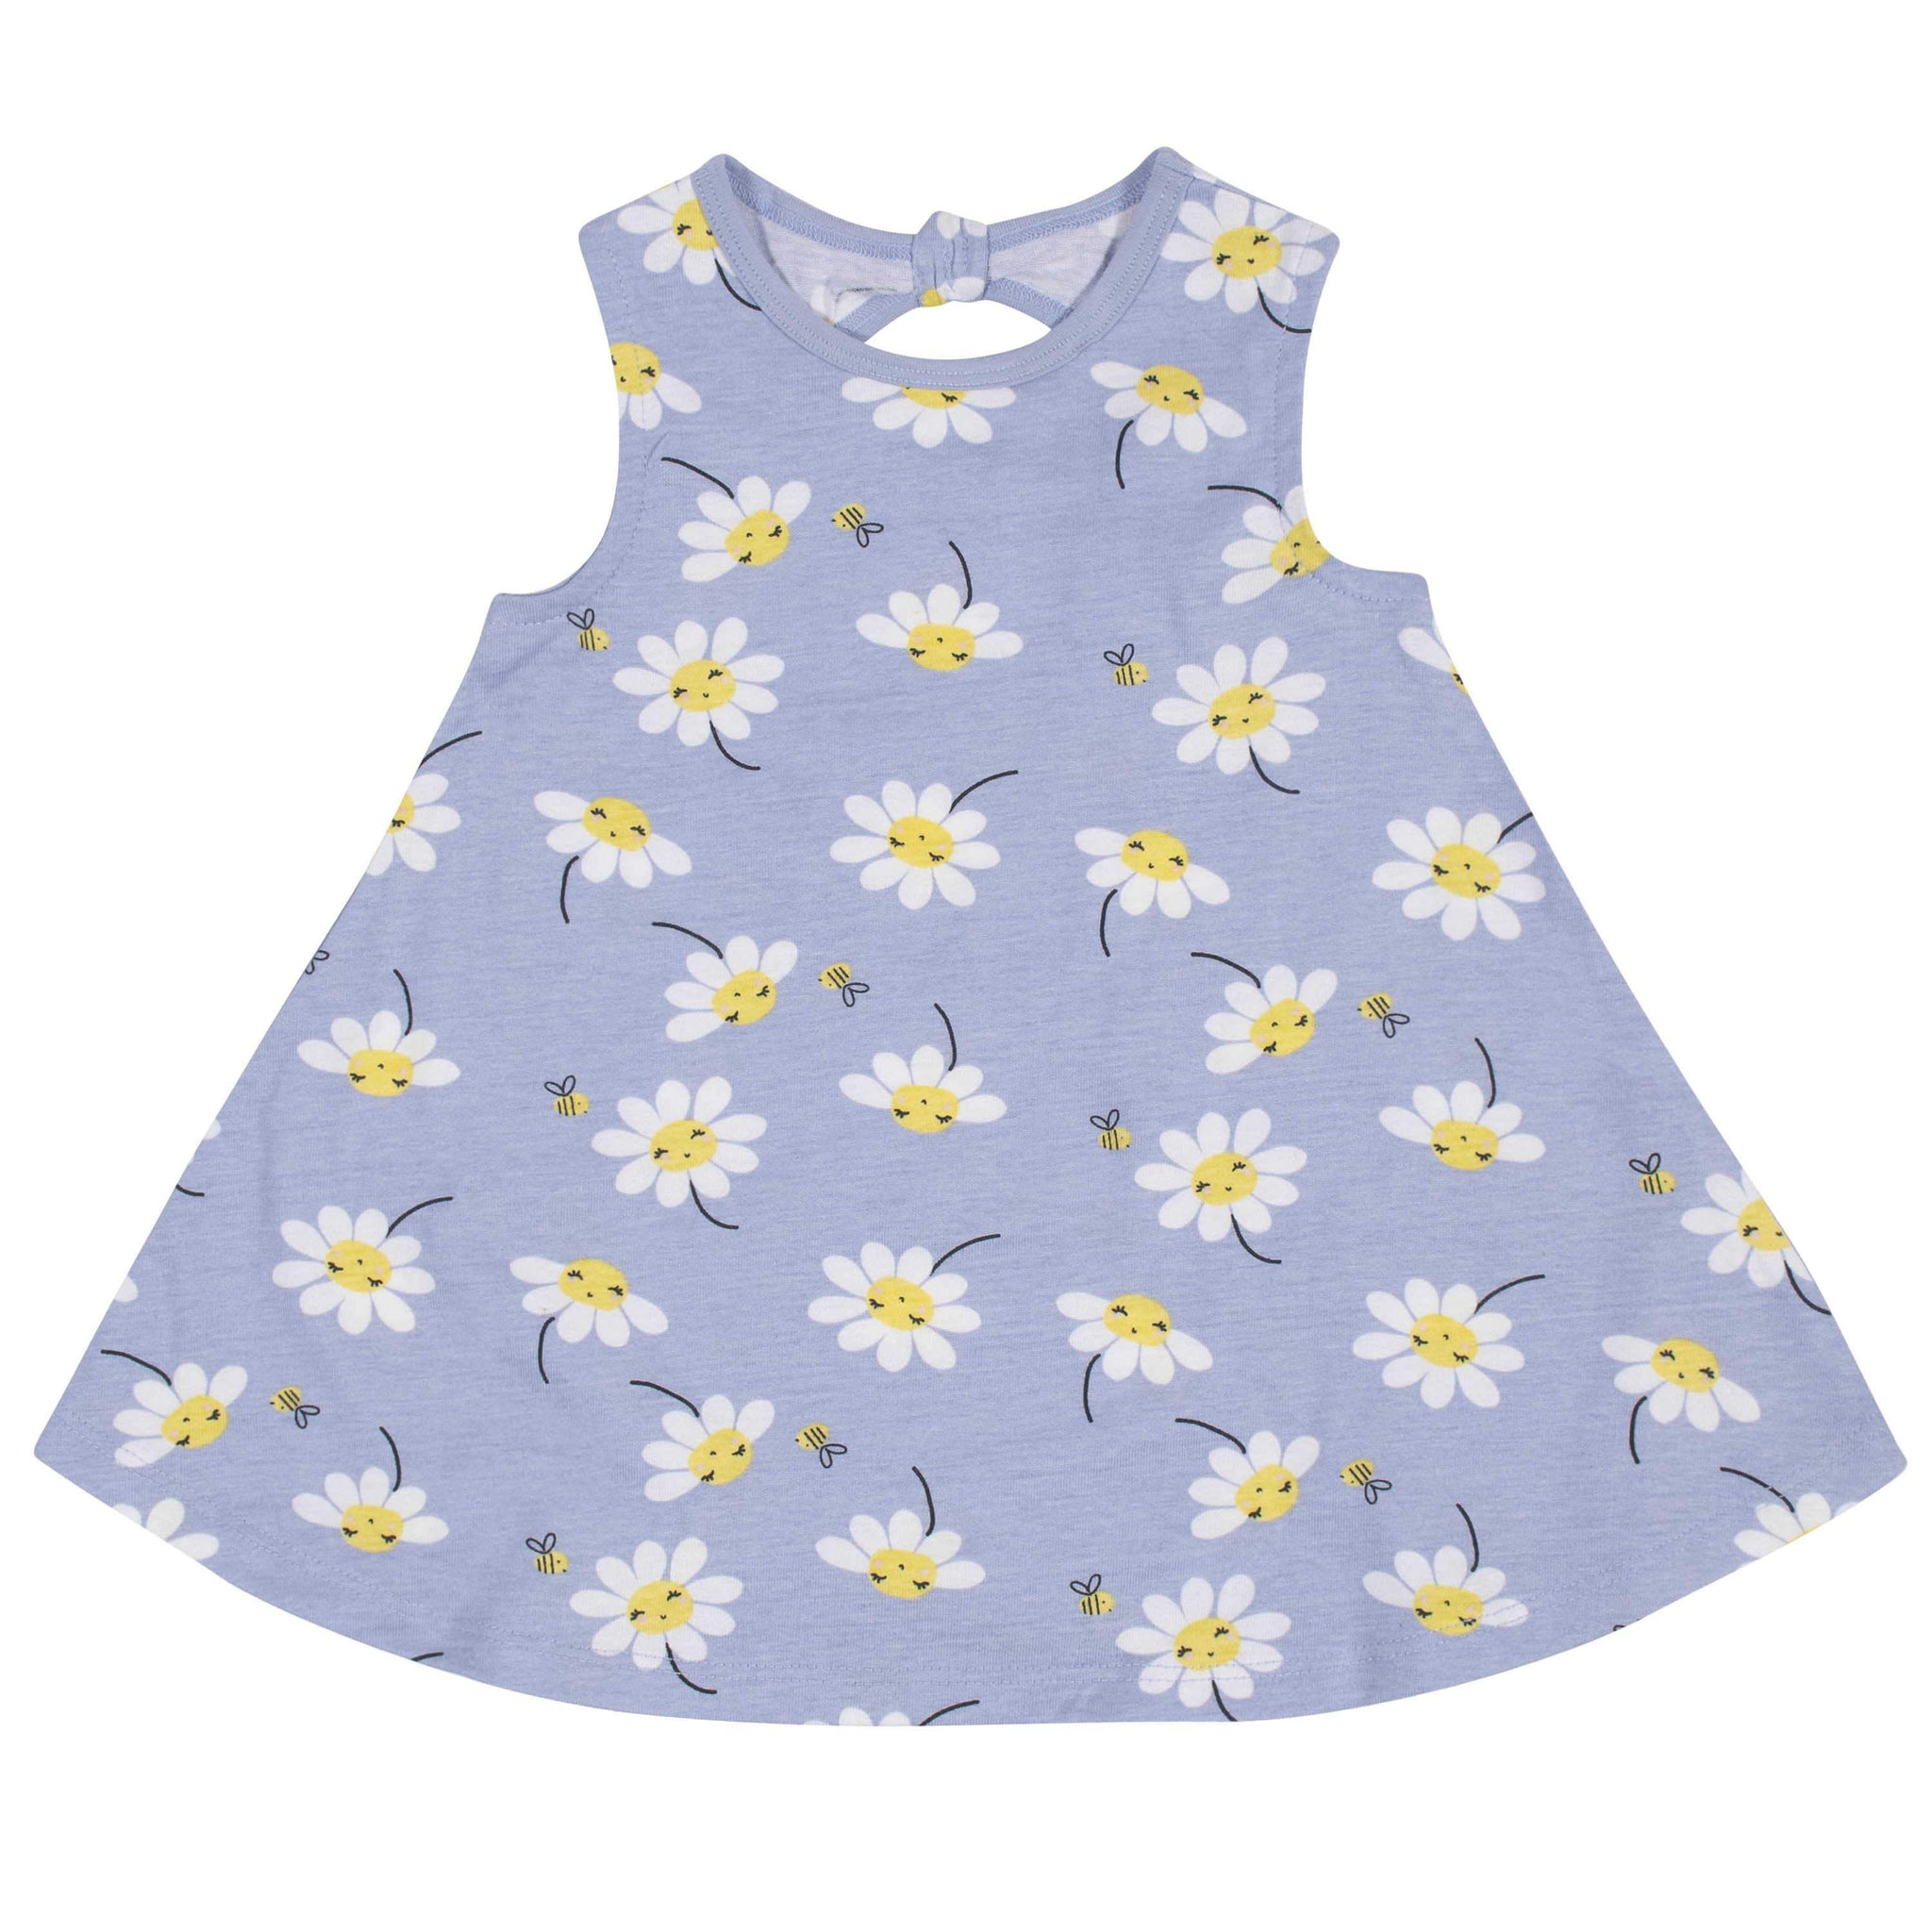 3-Piece Baby Girls' Daisies Dress, Diaper Cover, and Hat Set